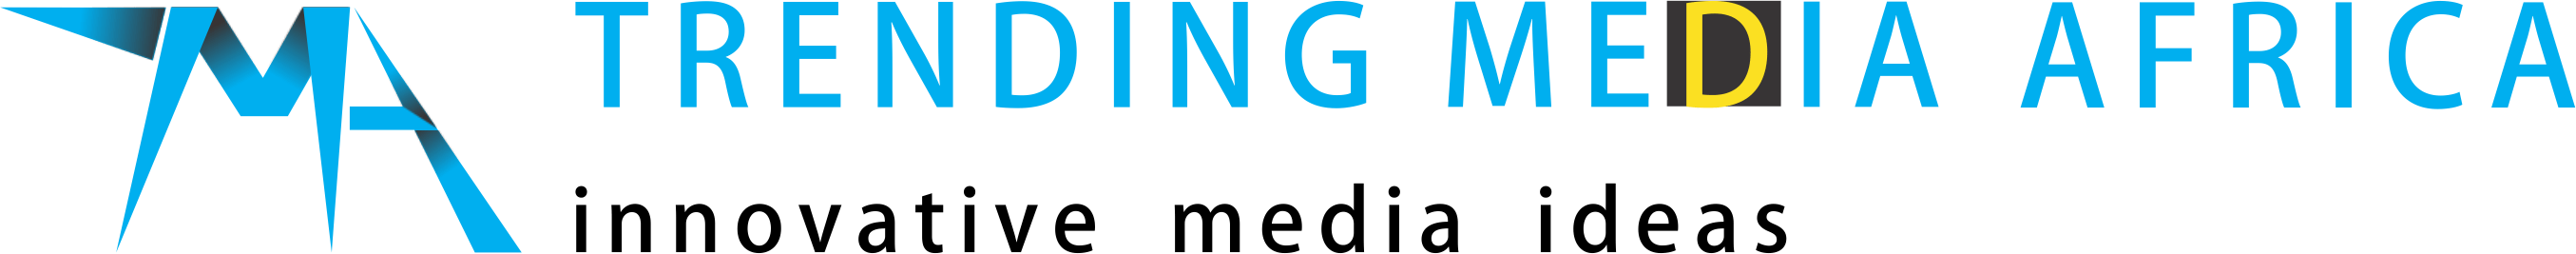 Warner Media, A Leading Media And Entertainment Company On Friday Announced Partnership With Nigeria's Trending Media (tma) To Diversify Both Company's Stream. Trending Media Africa (tma) Is O